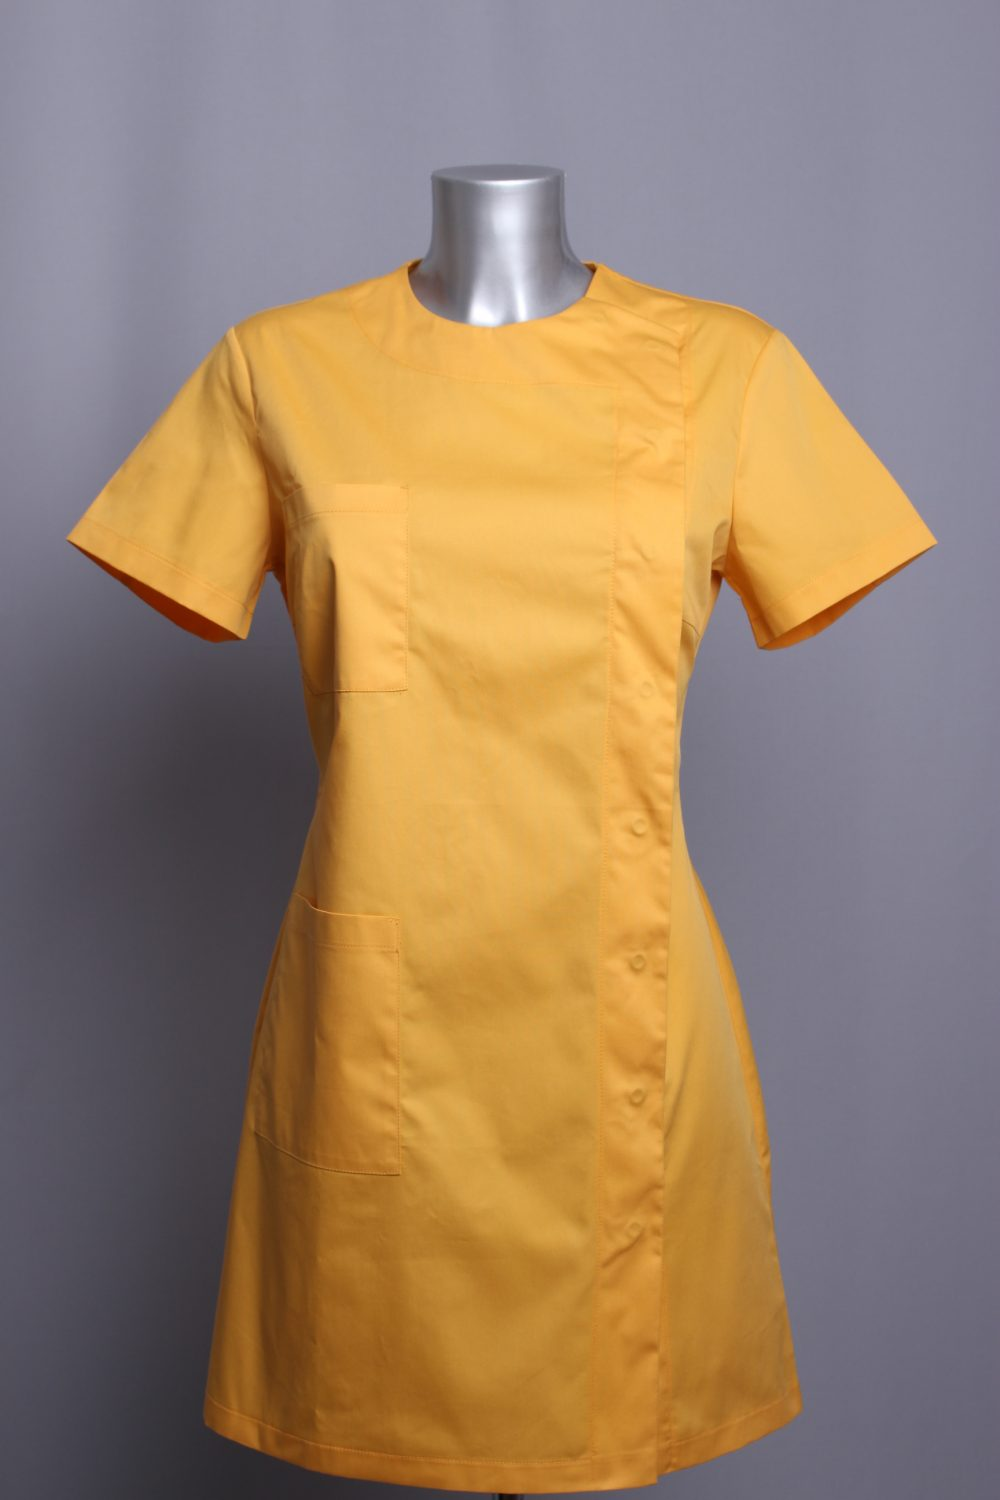 medical work clothes, uniforms for hairdresser, spa